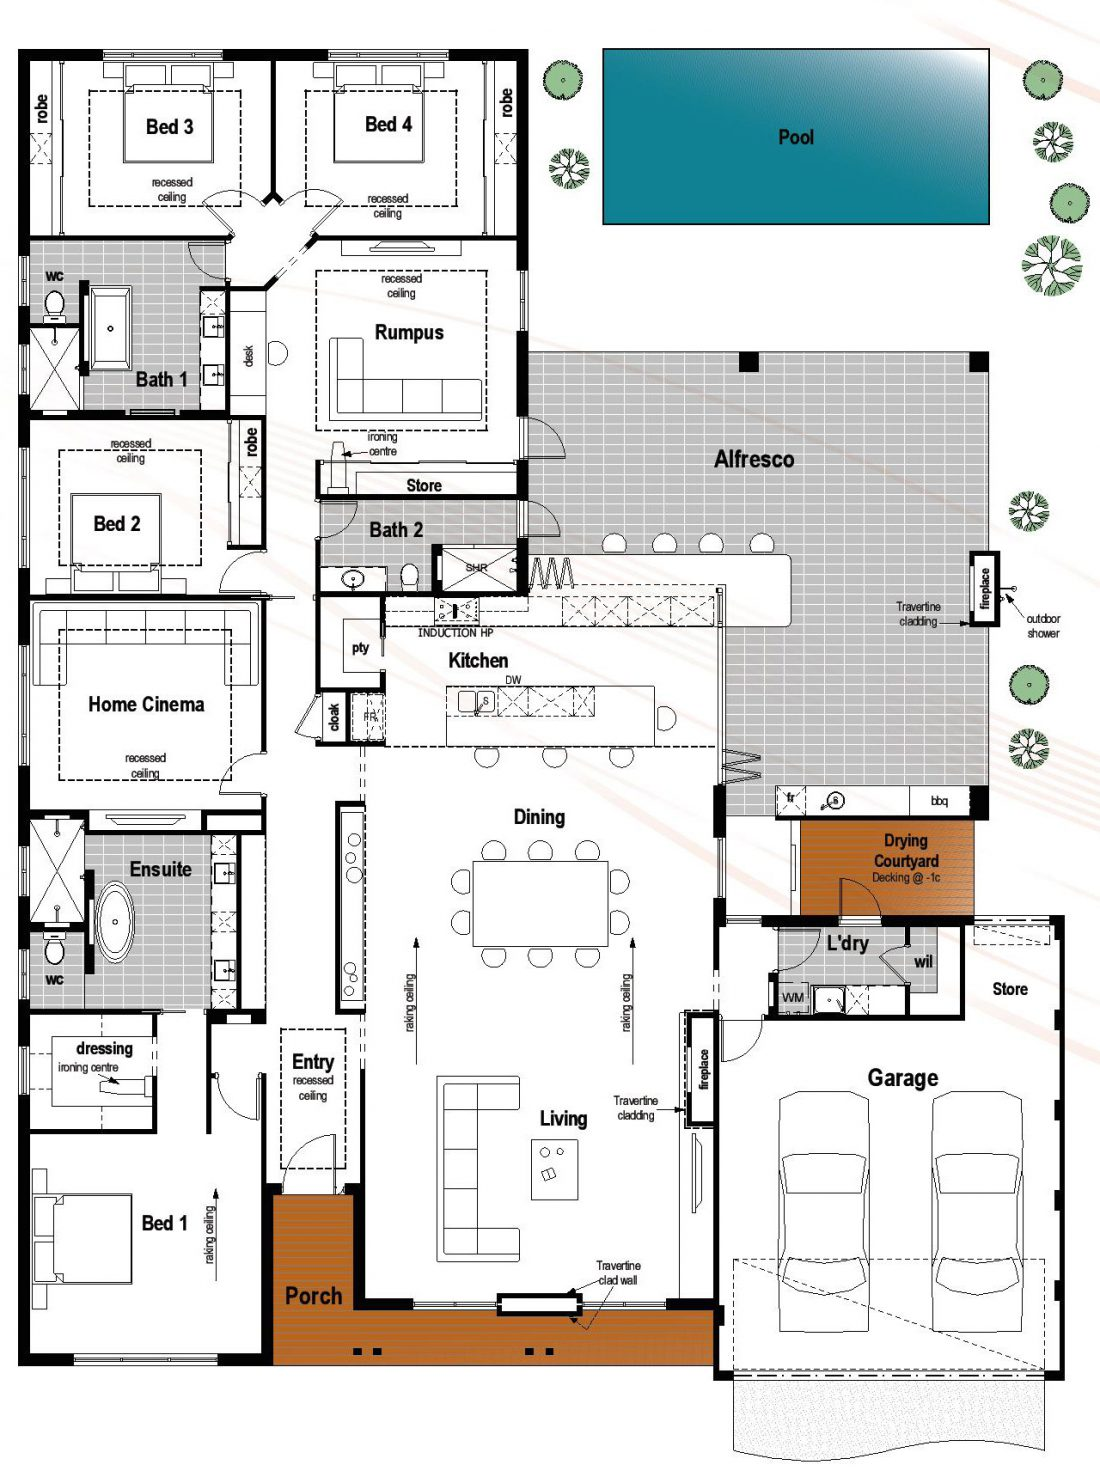 Floor plan friday 4 bedroom 3 bathroom with modern for My family house plans